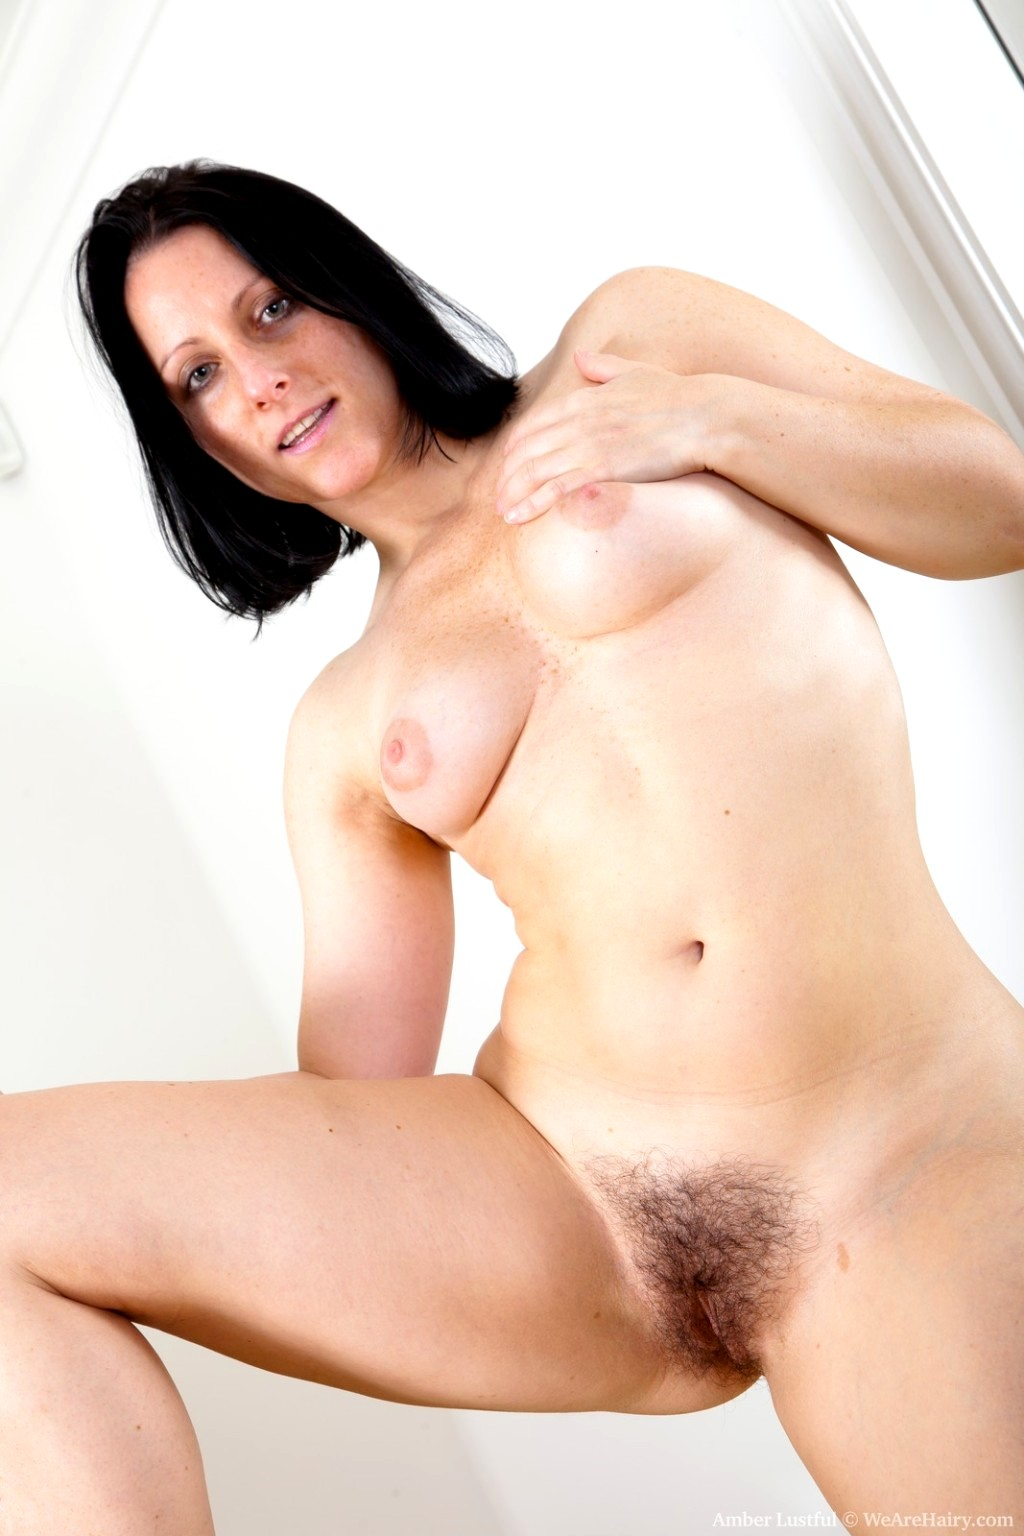 We Are Hairy Amber Lustfull Rated We Are Hairy Tape Sex Pics